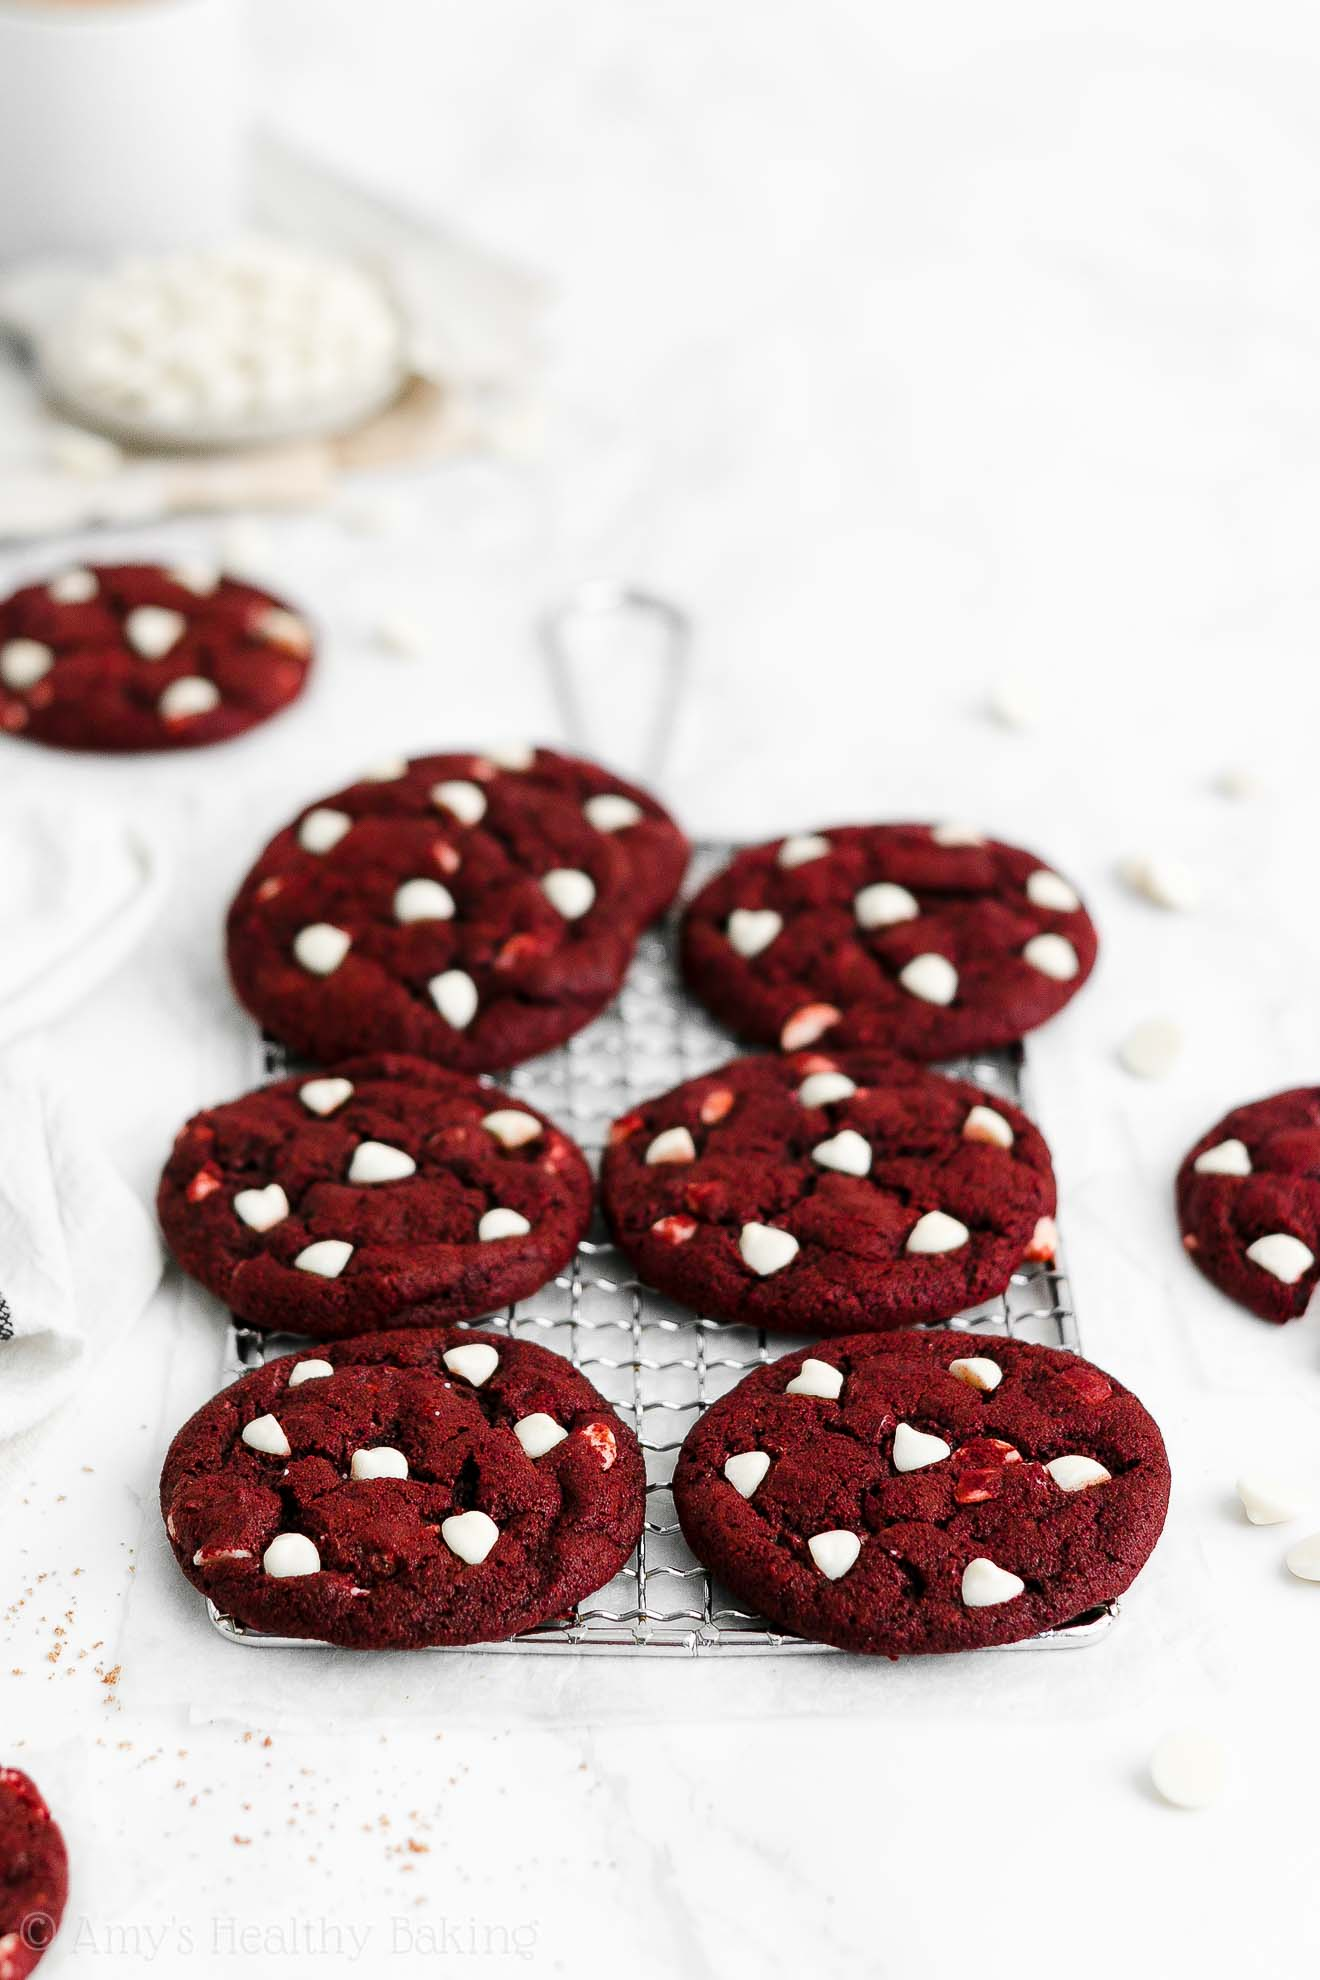 Easy Healthy Low Calorie Weight Watchers White Chocolate Red Velvet Cookies